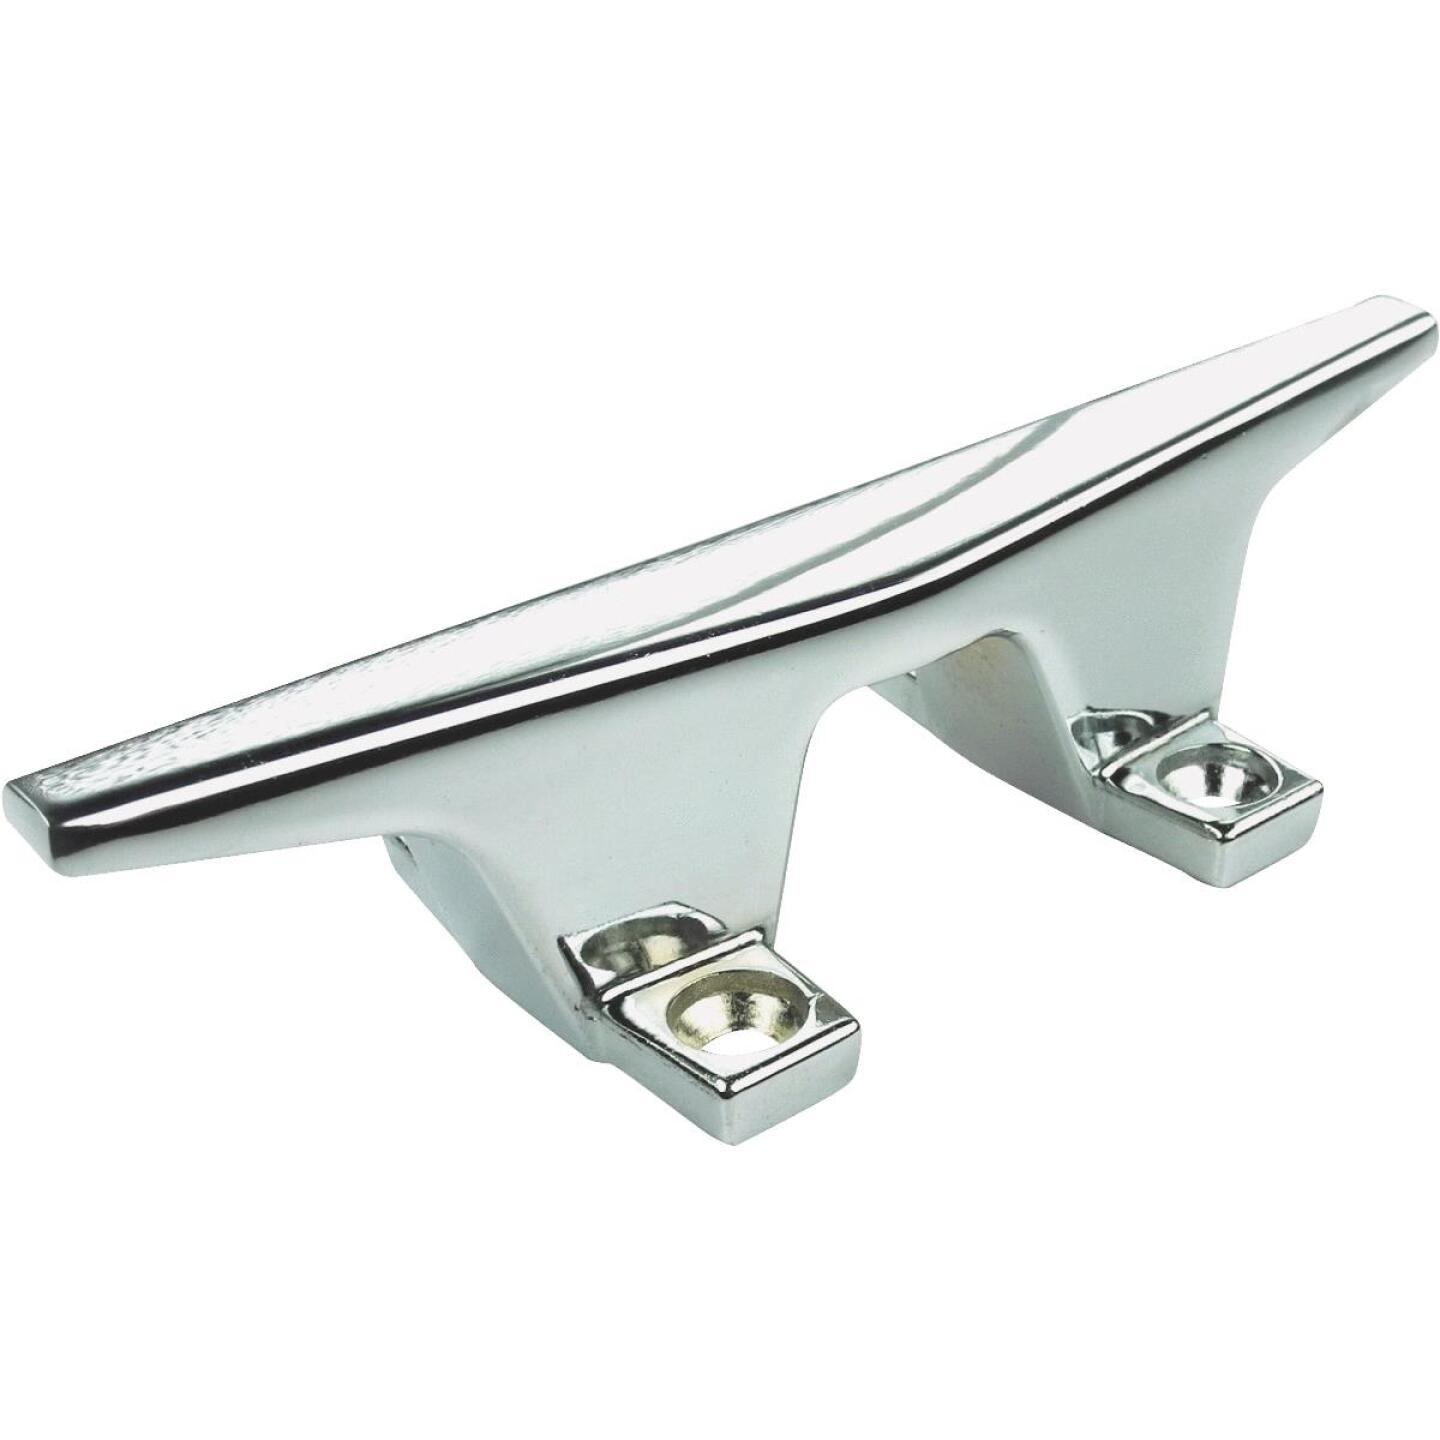 Seachoice 4-1/2 In. Zinc Hollow Base Cleat Image 1